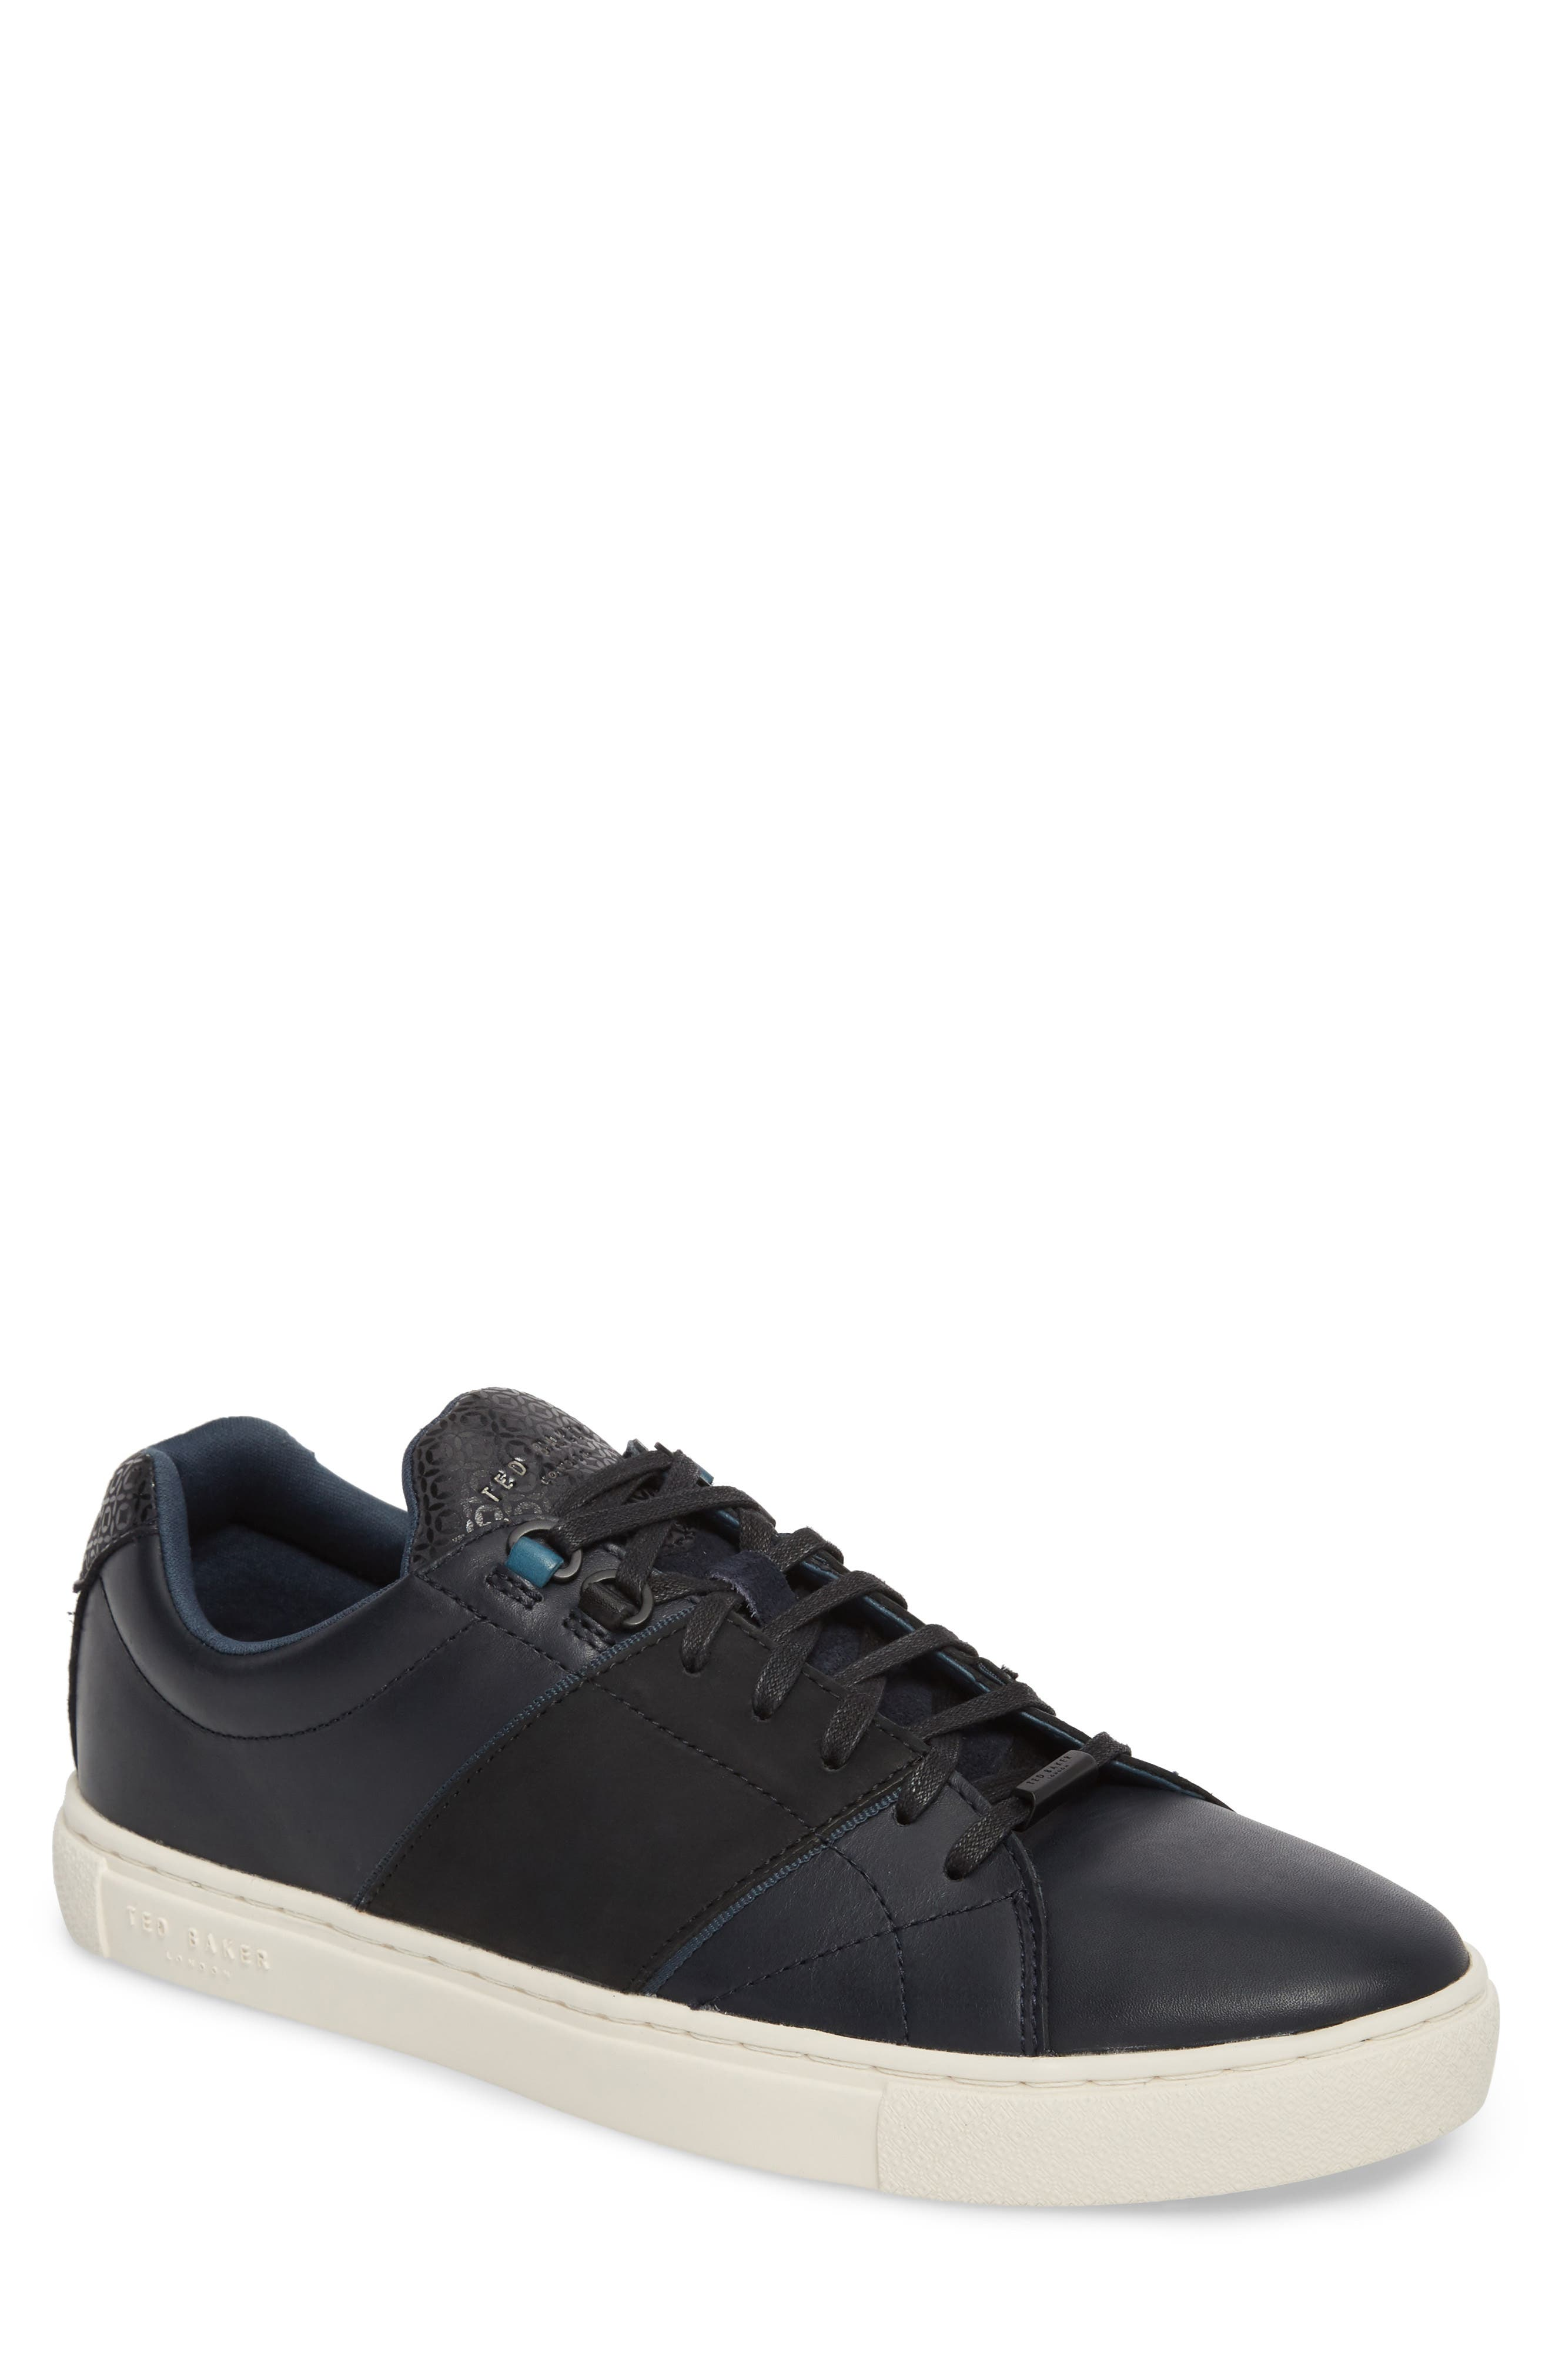 Ted Baker Quana Low Top Sneaker,                         Main,                         color, Dark Blue Leather